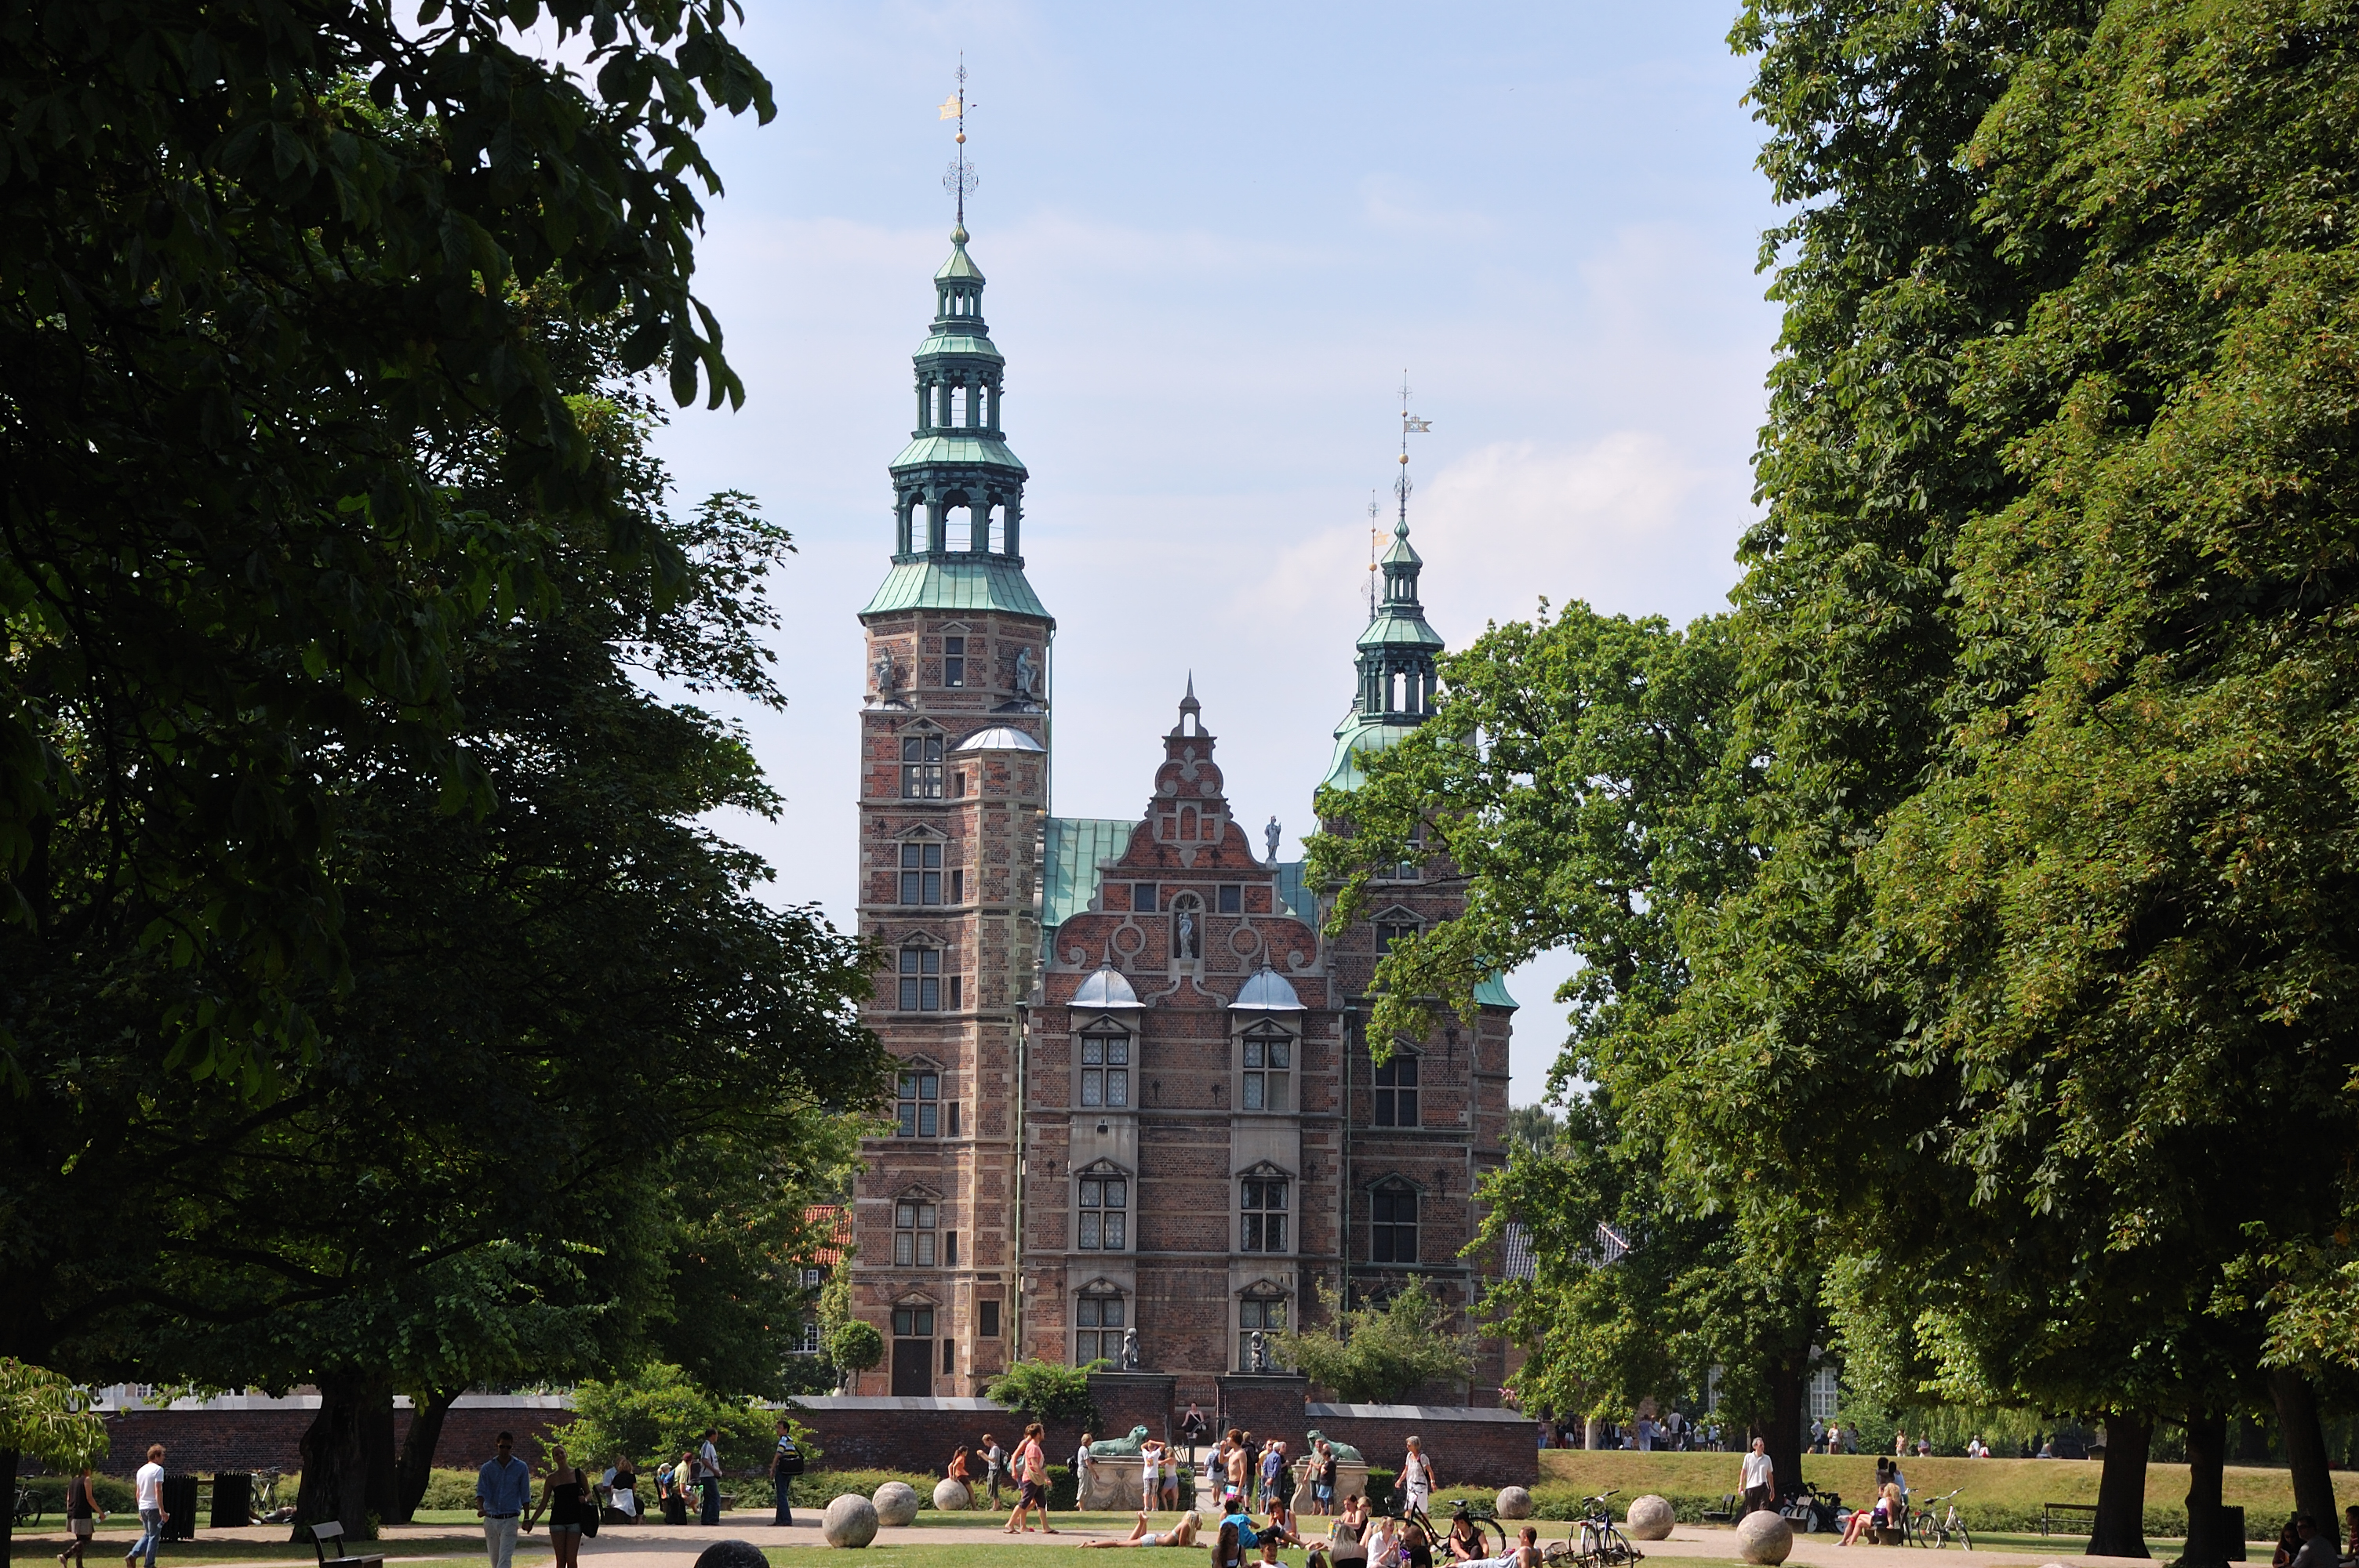 4631109752 further File Mercedes Benz F800 Style rear further 95 furthermore File Rosenborg Castle  Copenhagen in addition File H C3 B4tel de Blossac   escalier int C3 A9rieur. on 2010 3008